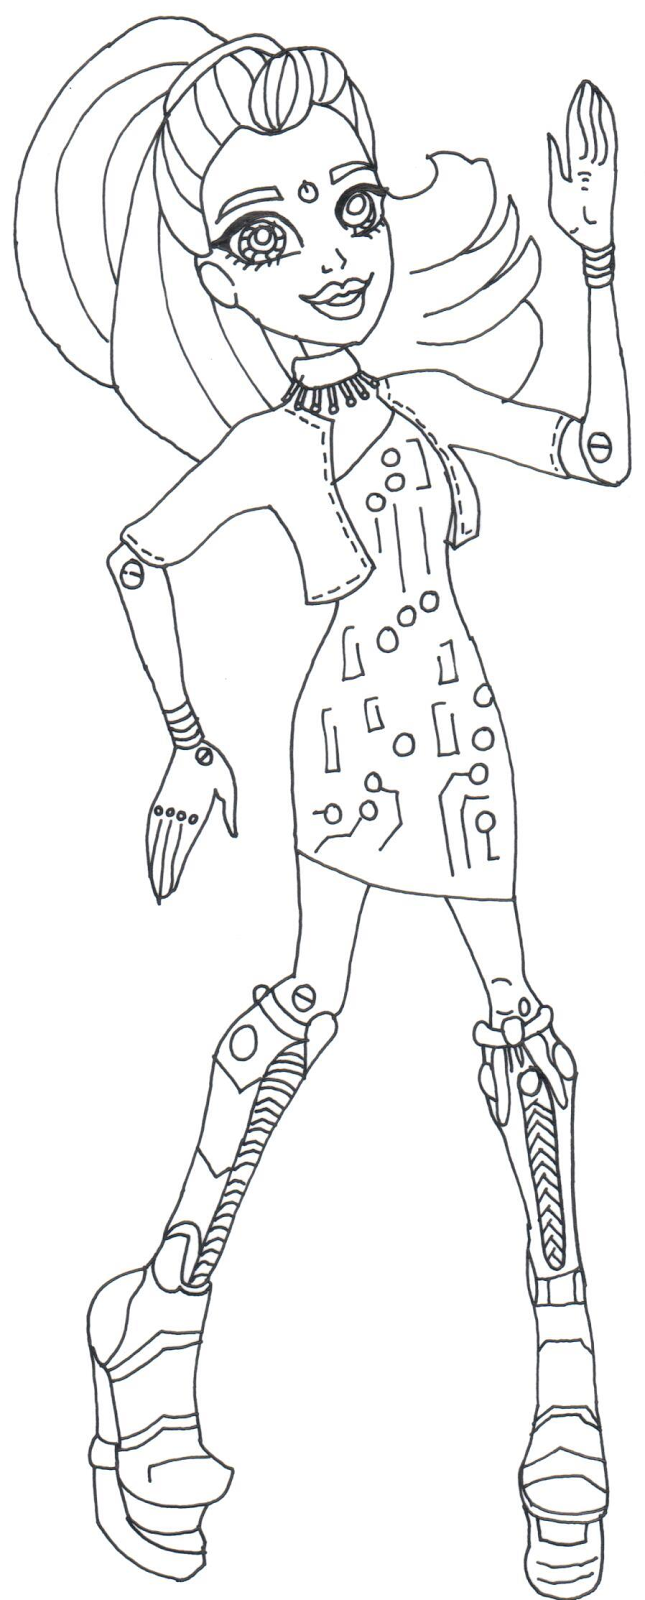 robot monster coloring pages - photo#8